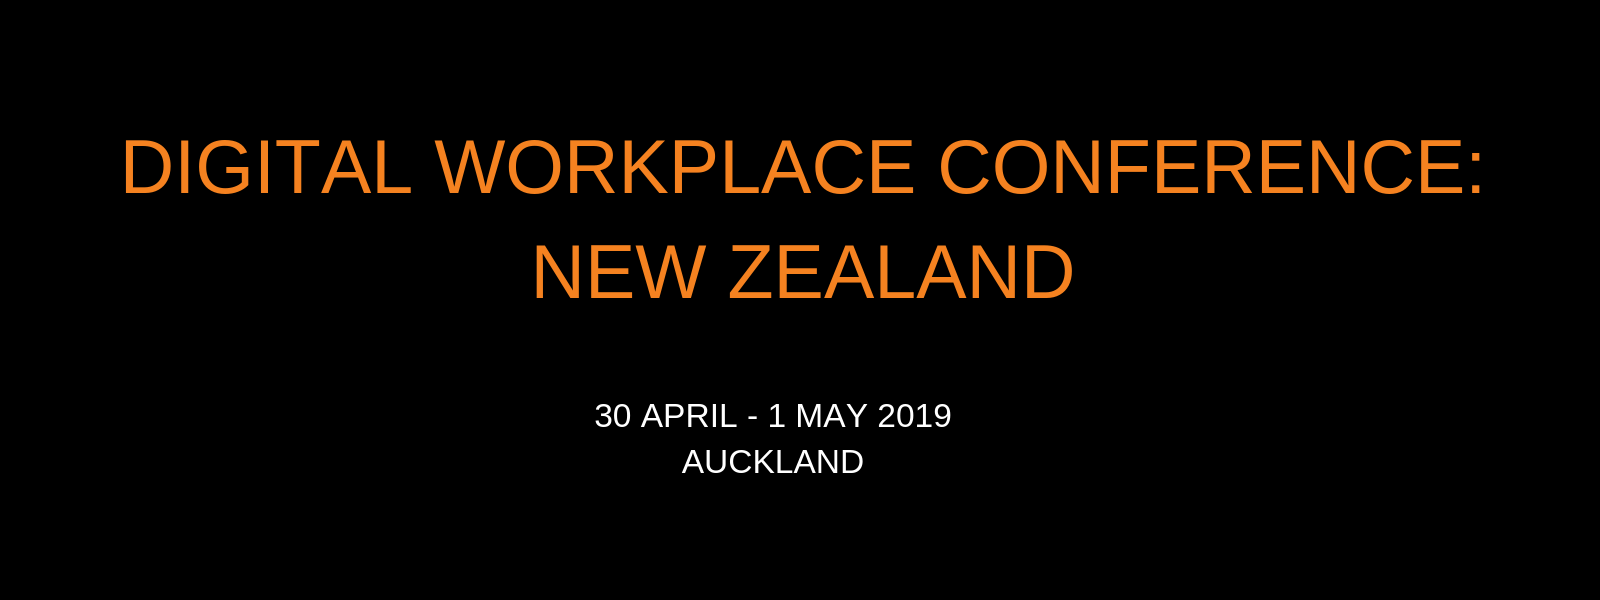 Digital Workplace Conference: New Zealand 2019